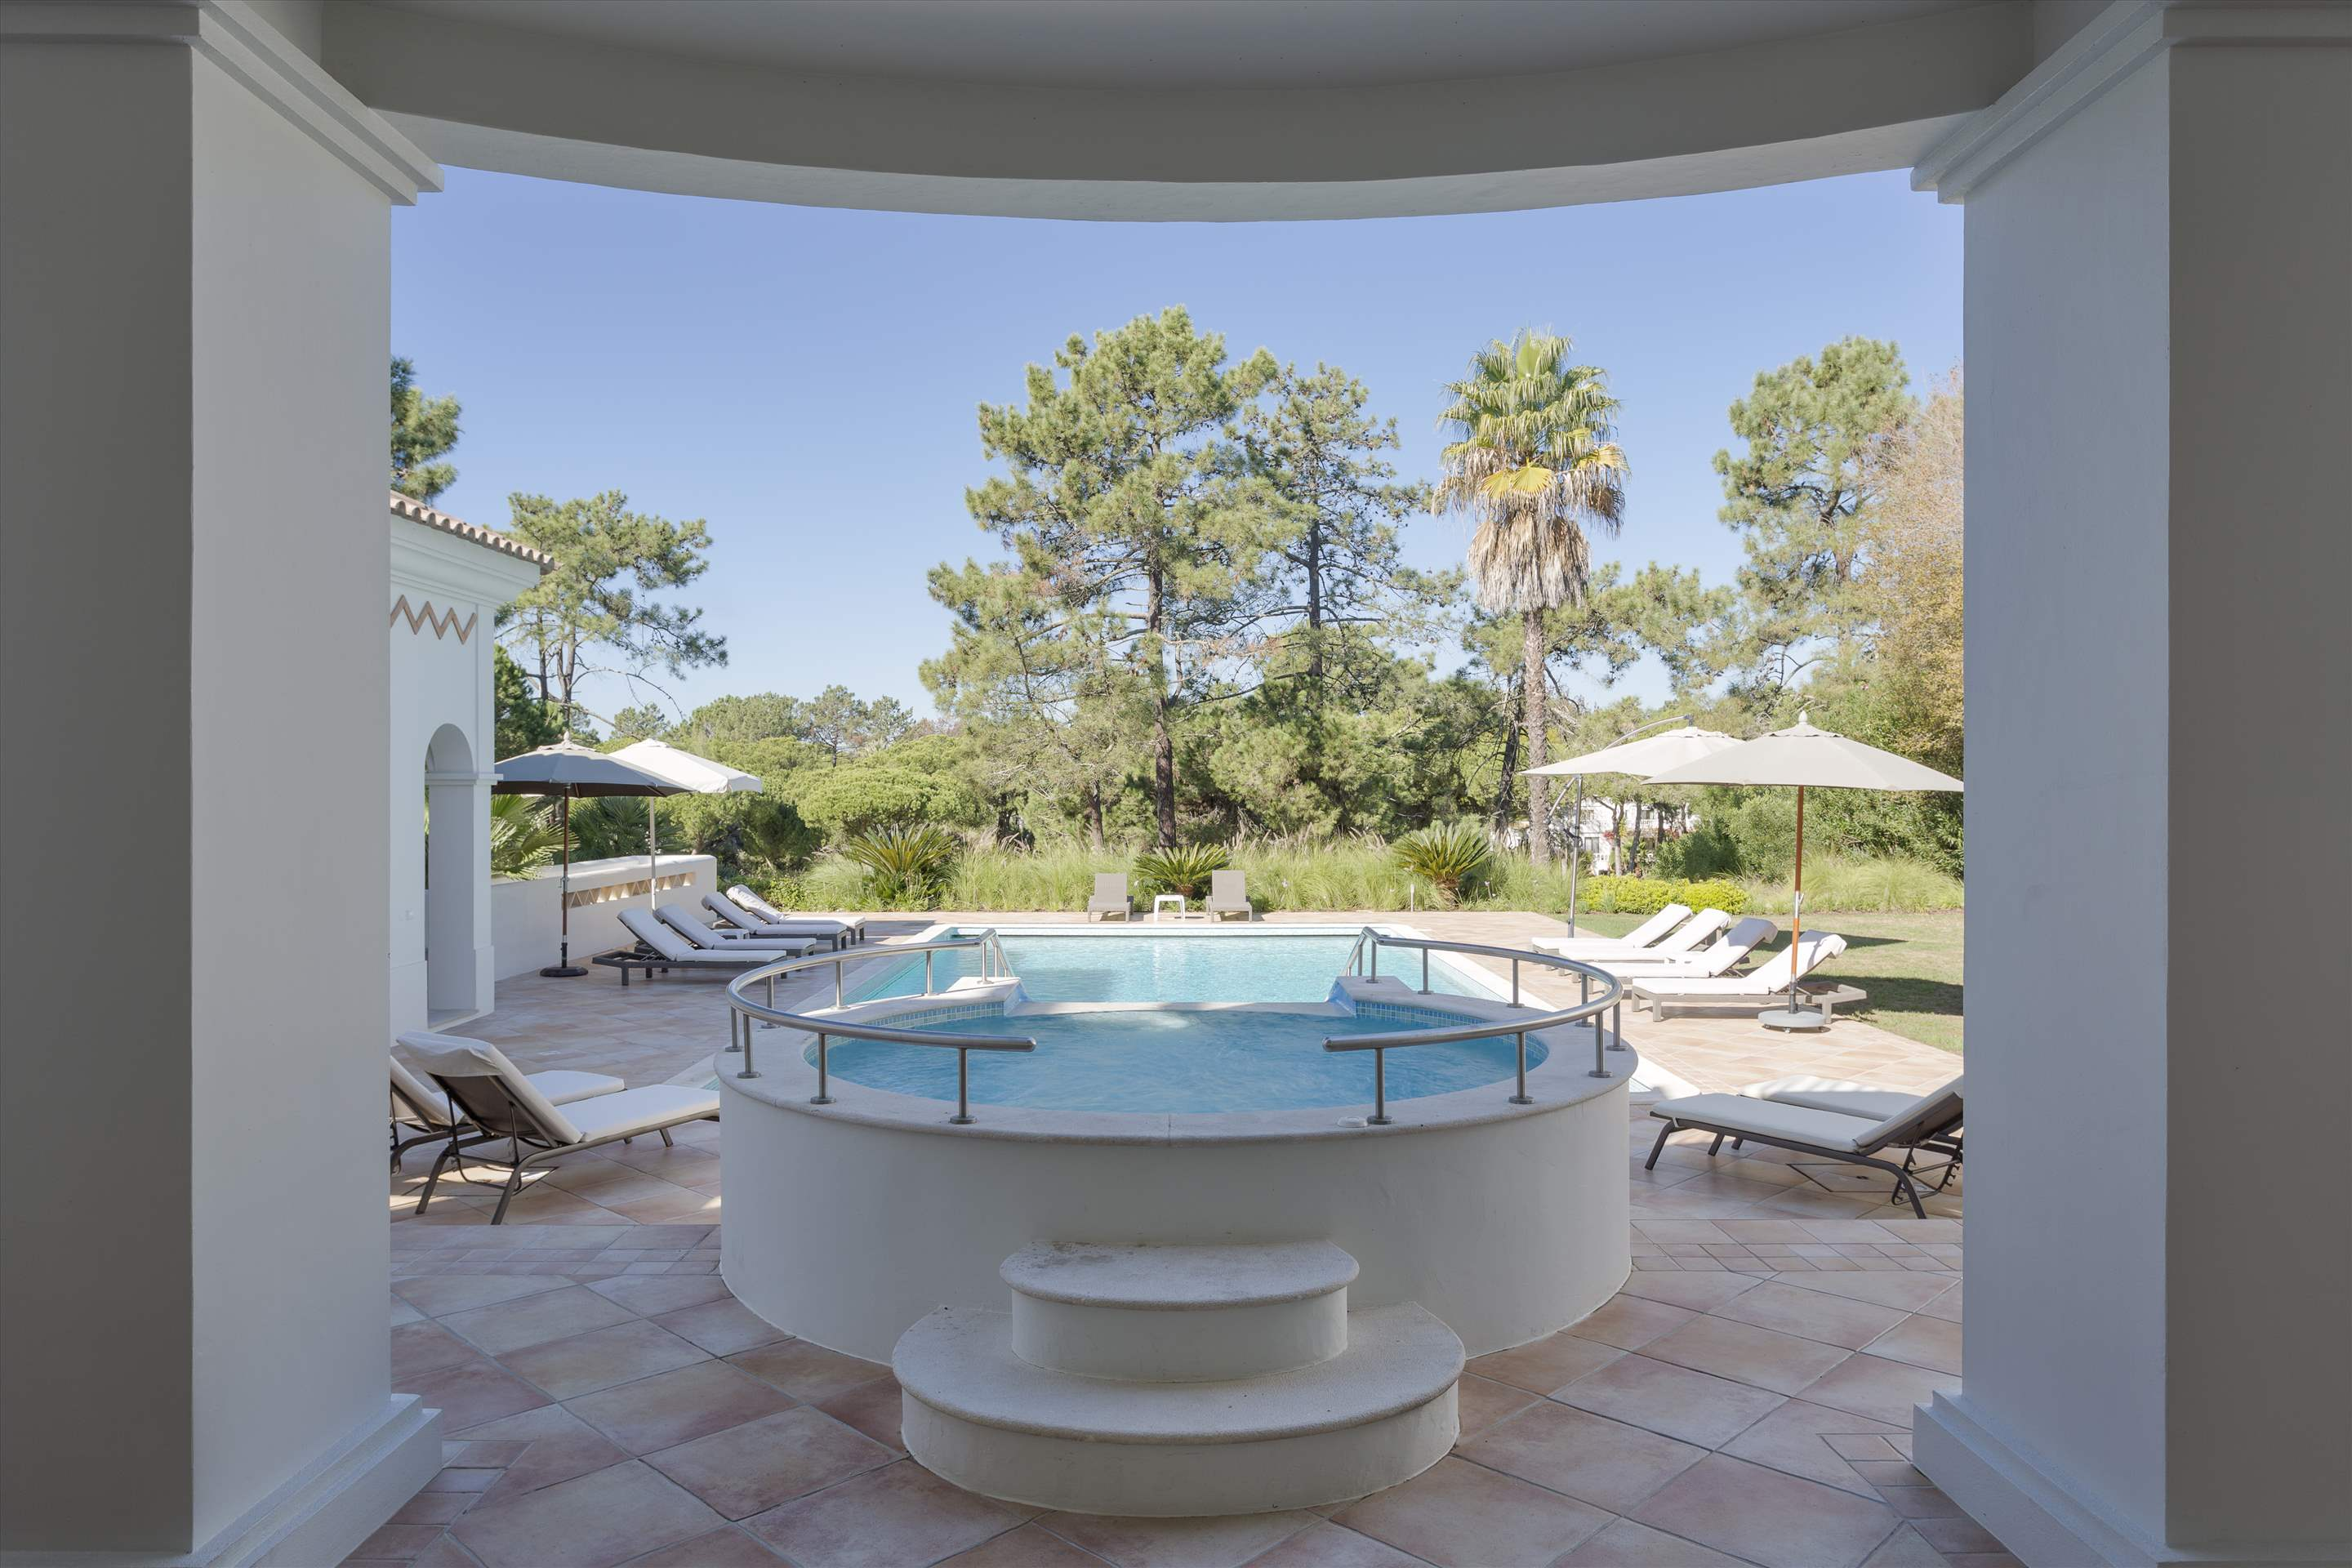 Villa Lantana 2, Main house & Annexe, 6 bedrooms, 6 bedroom villa in Quinta do Lago, Algarve Photo #12